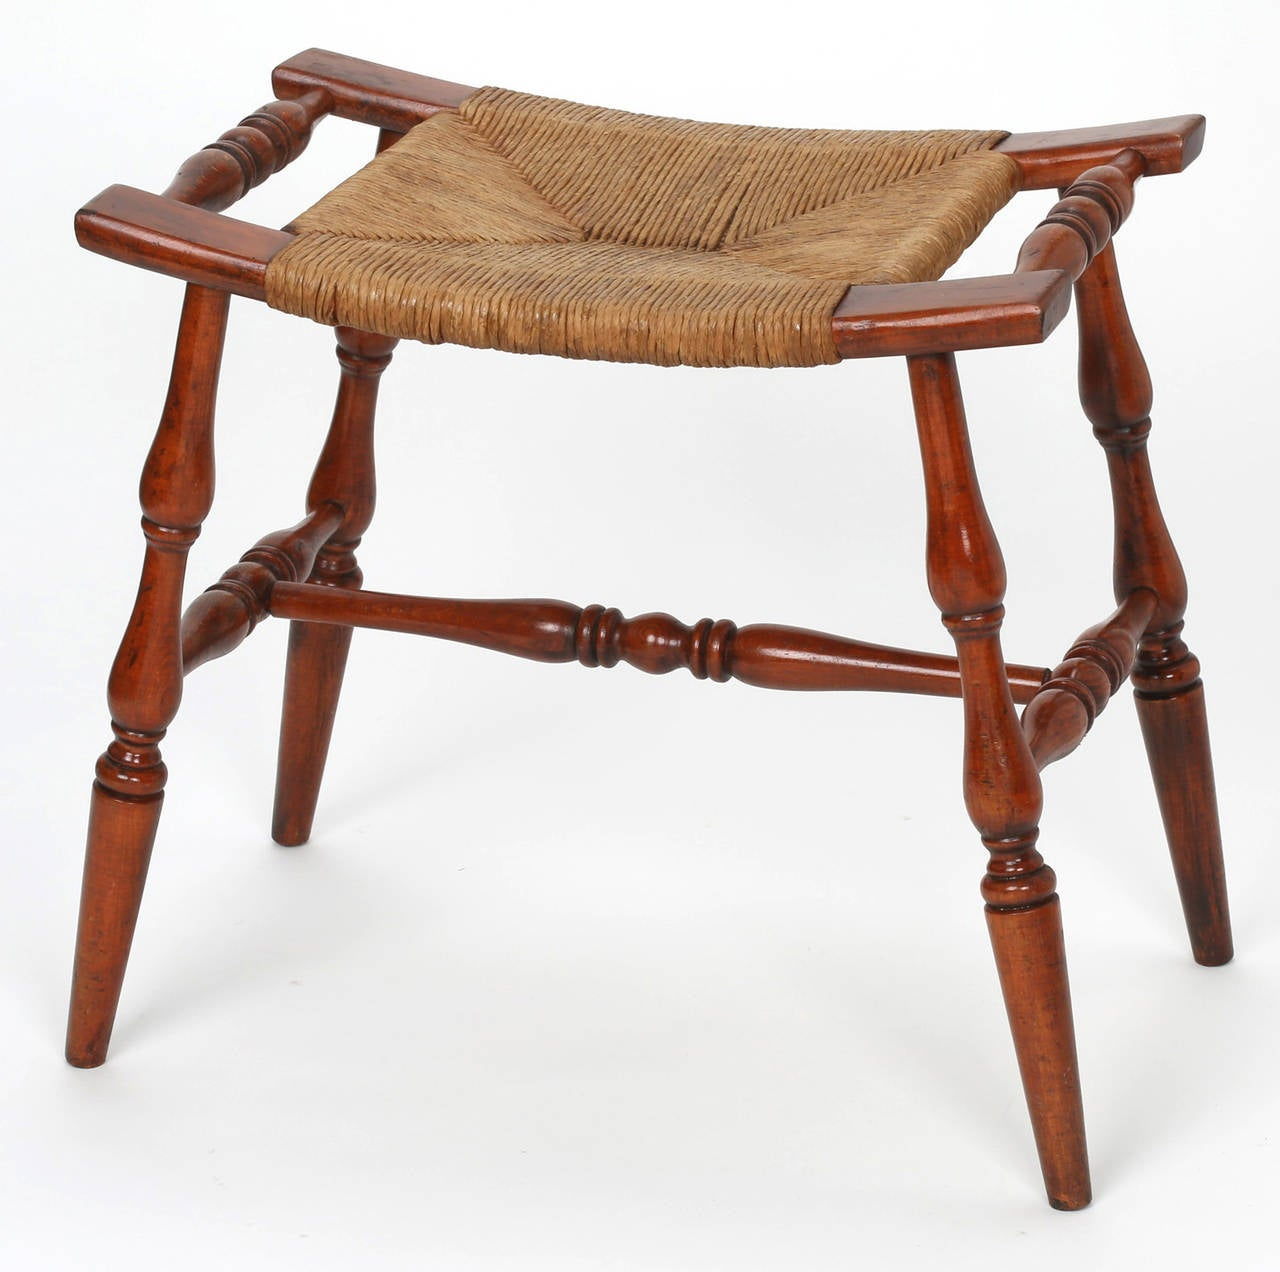 Very Impressive portraiture of Rush Seat Bench at 1stdibs with #763926 color and 1280x1272 pixels